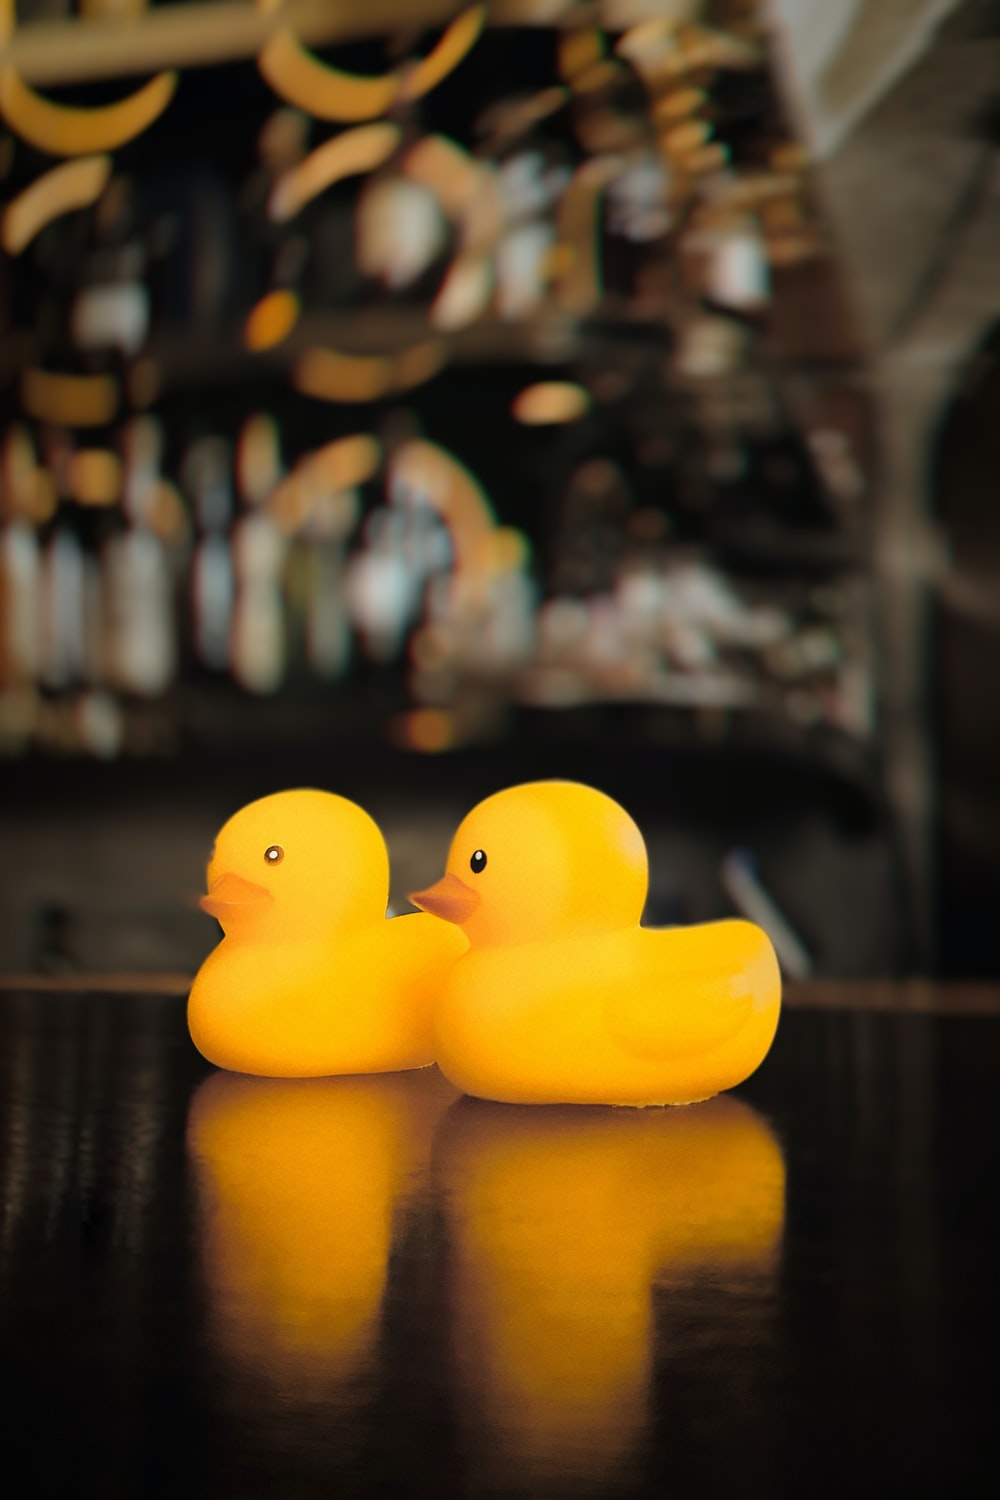 yellow rubber duck on brown wooden table